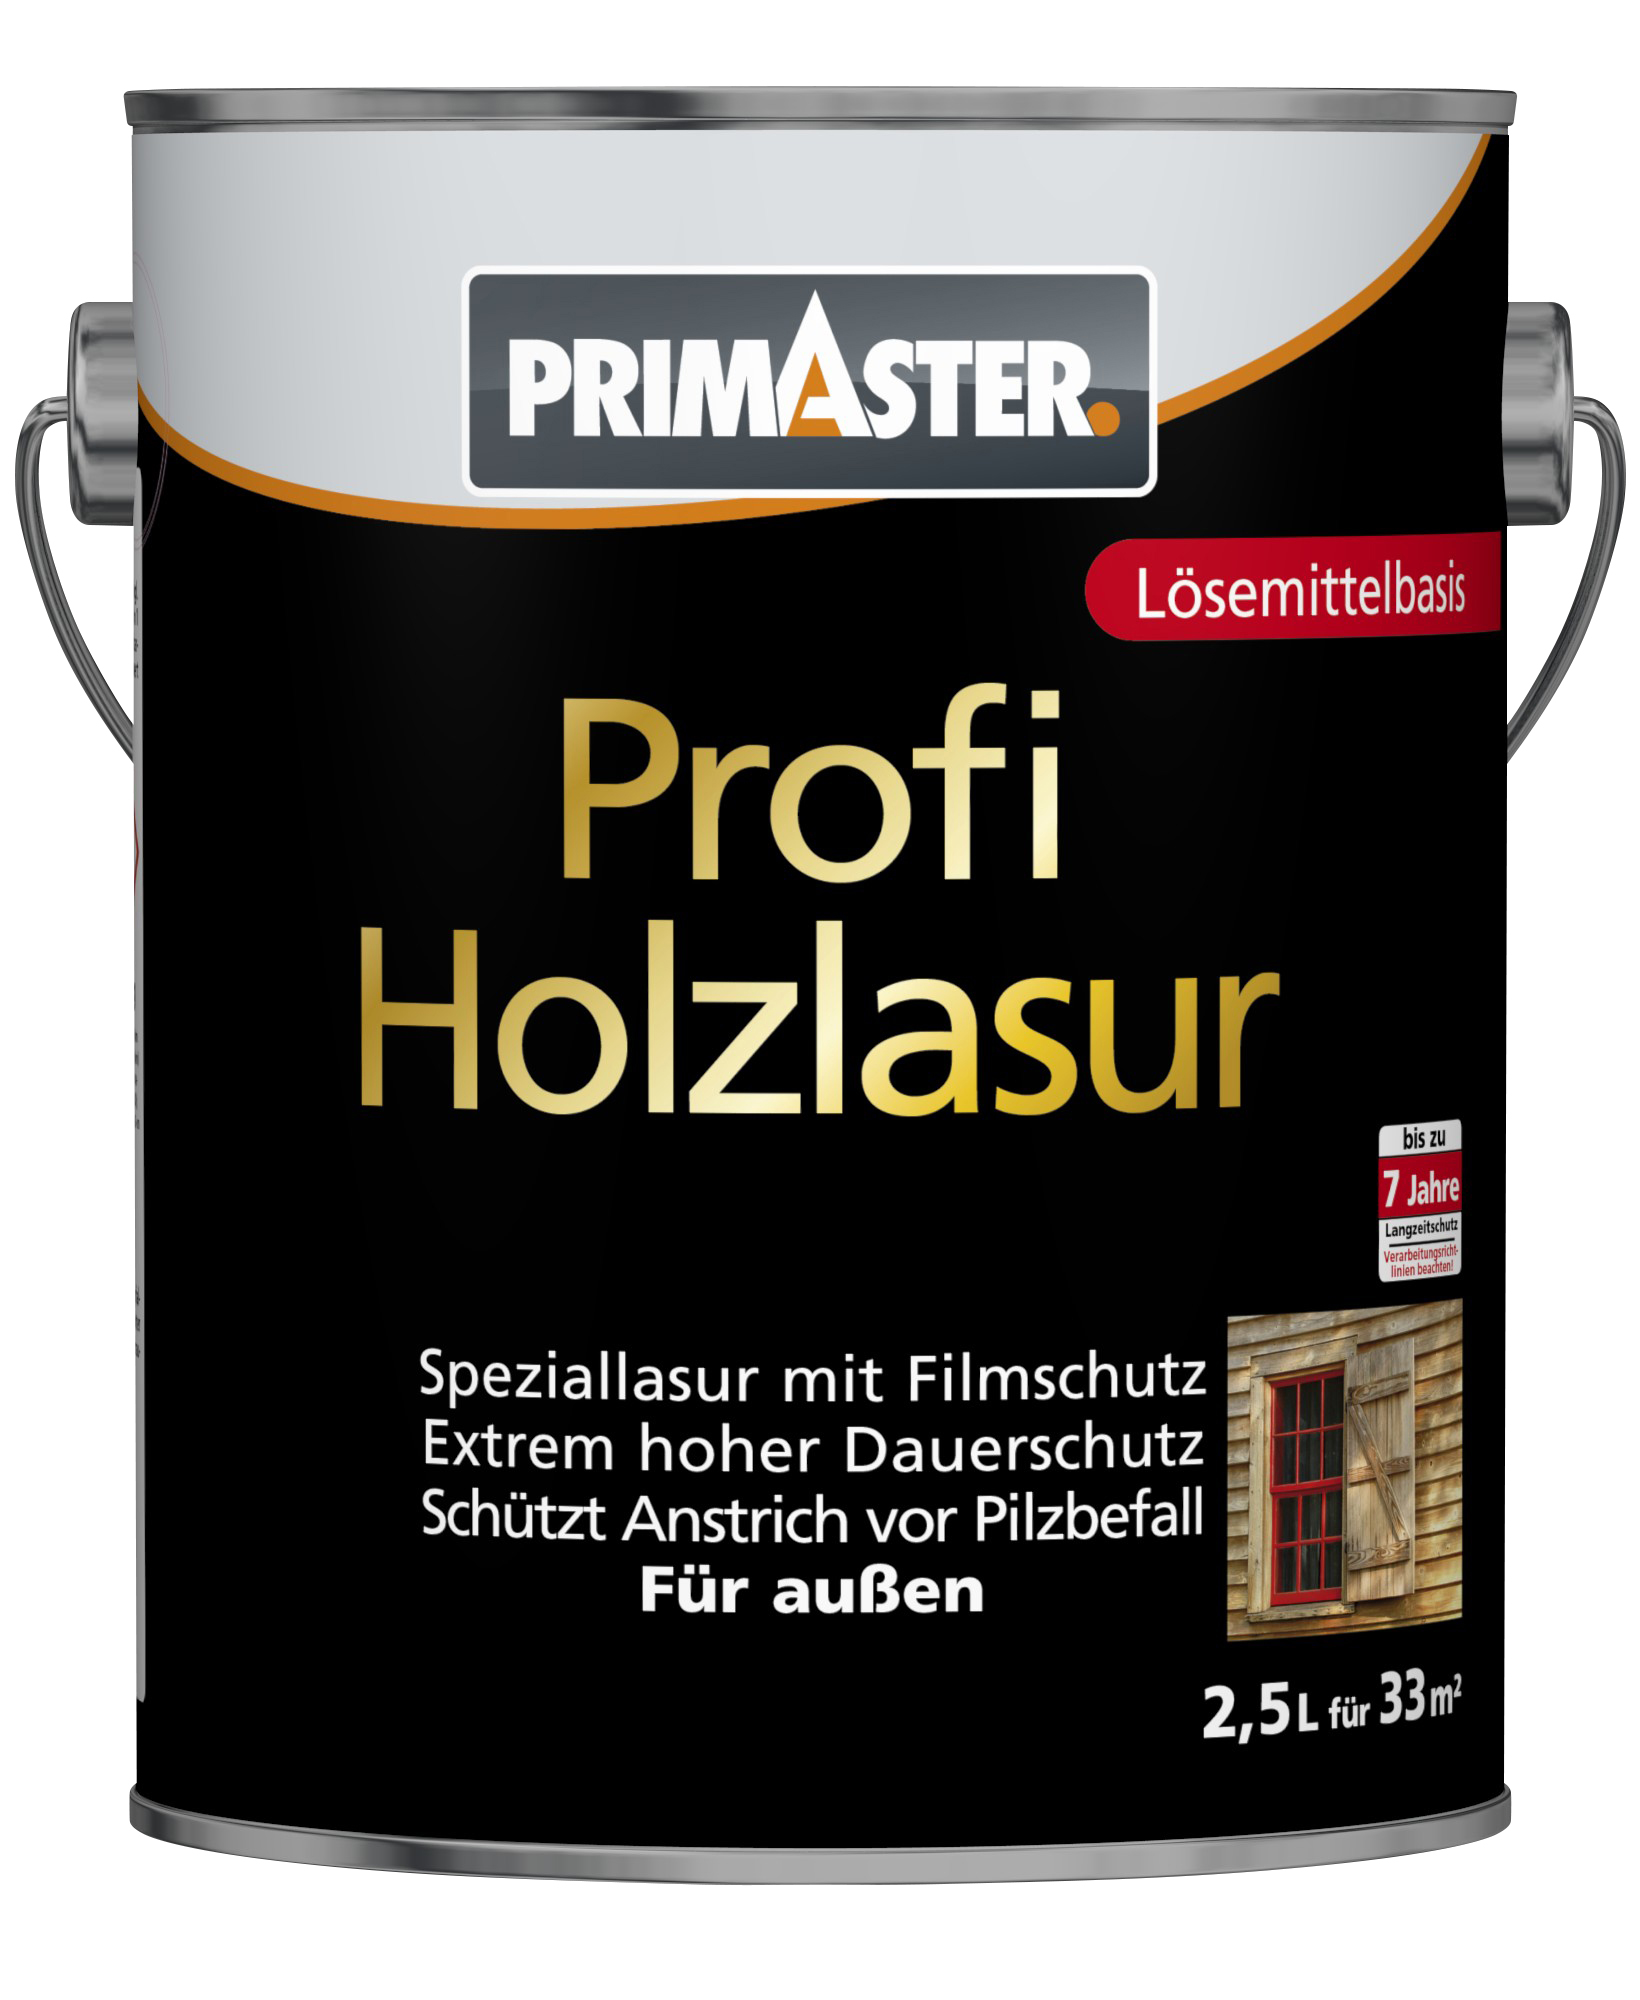 primaster profi holzschutzlasur lasuren globus baumarkt online shop. Black Bedroom Furniture Sets. Home Design Ideas